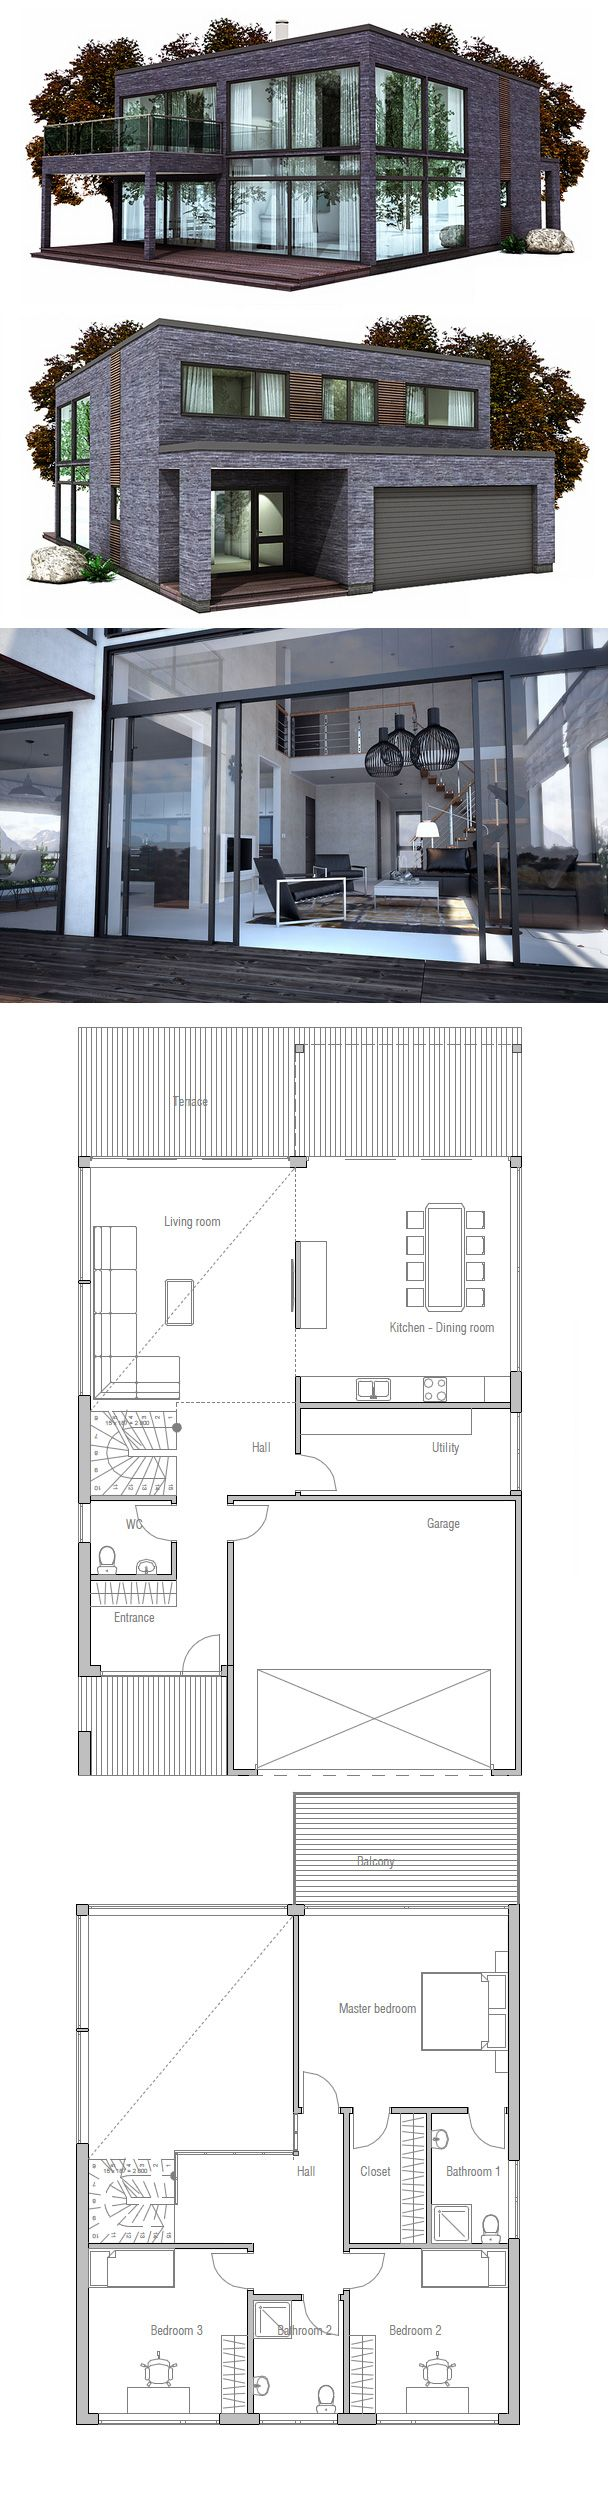 Architecture House Design Plans best 25+ beach house plans ideas on pinterest | lake house plans